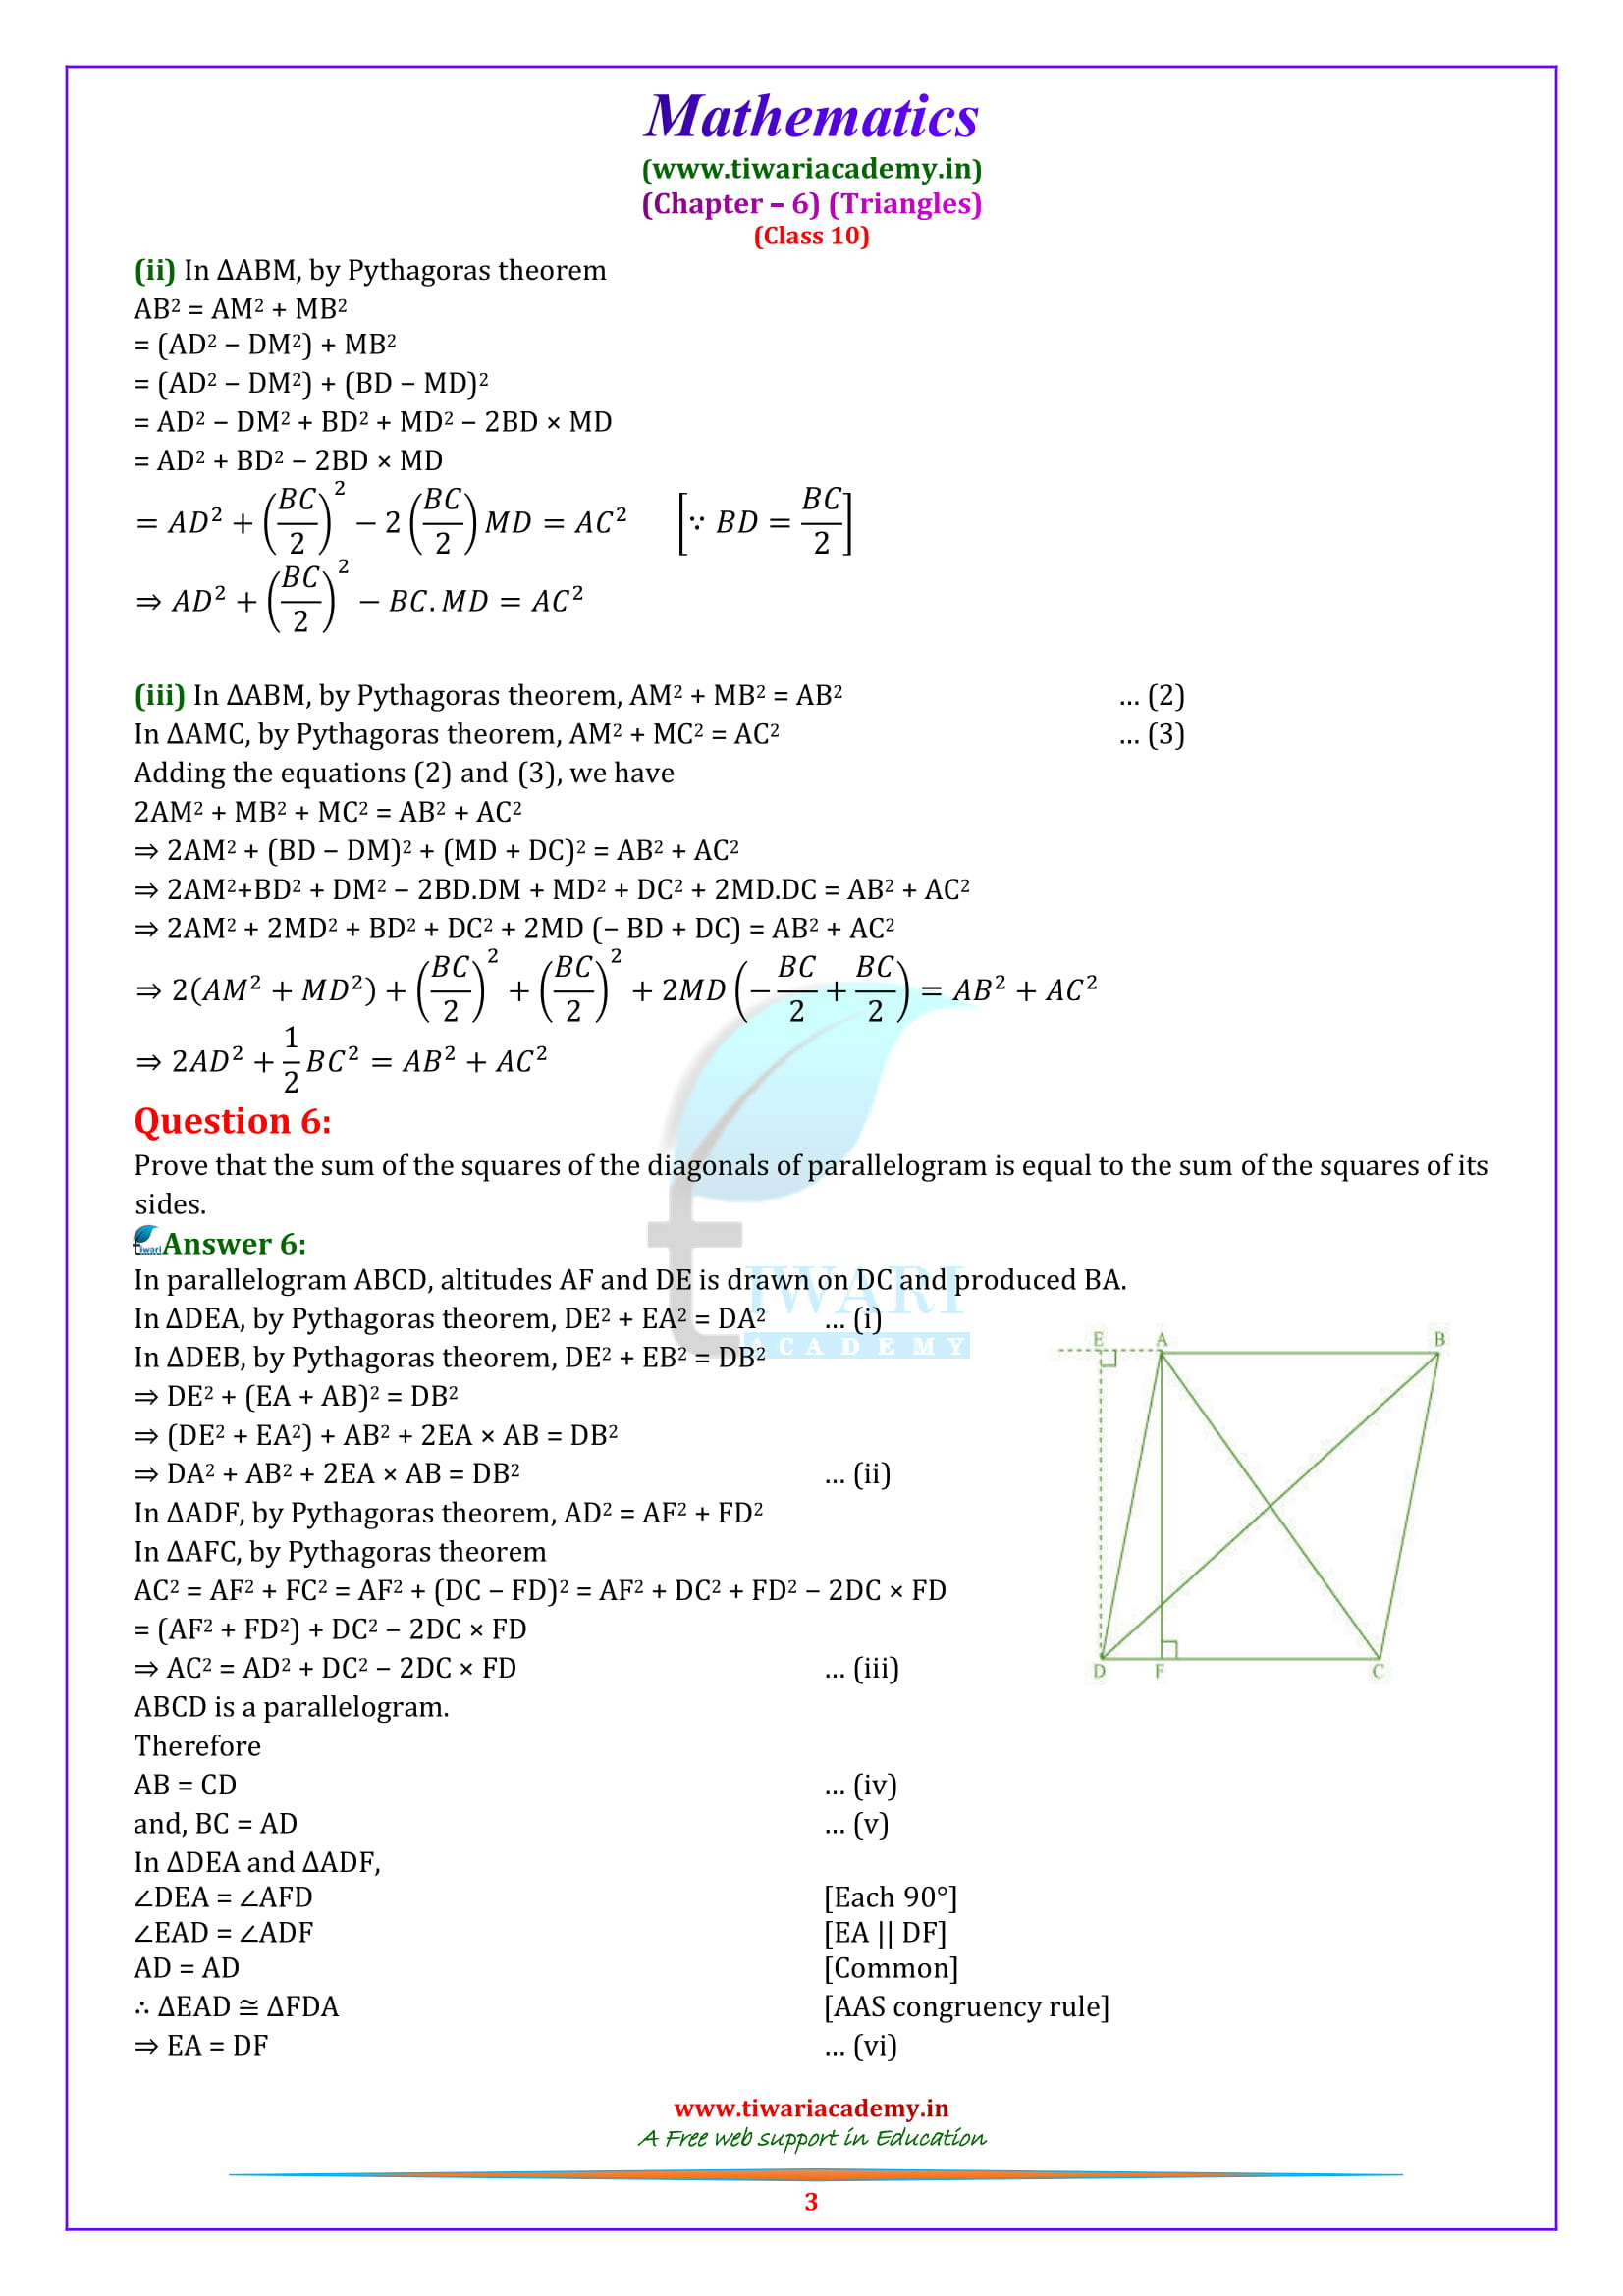 10 Maths optional Exercise 6.6 in English medium for up and cbse board